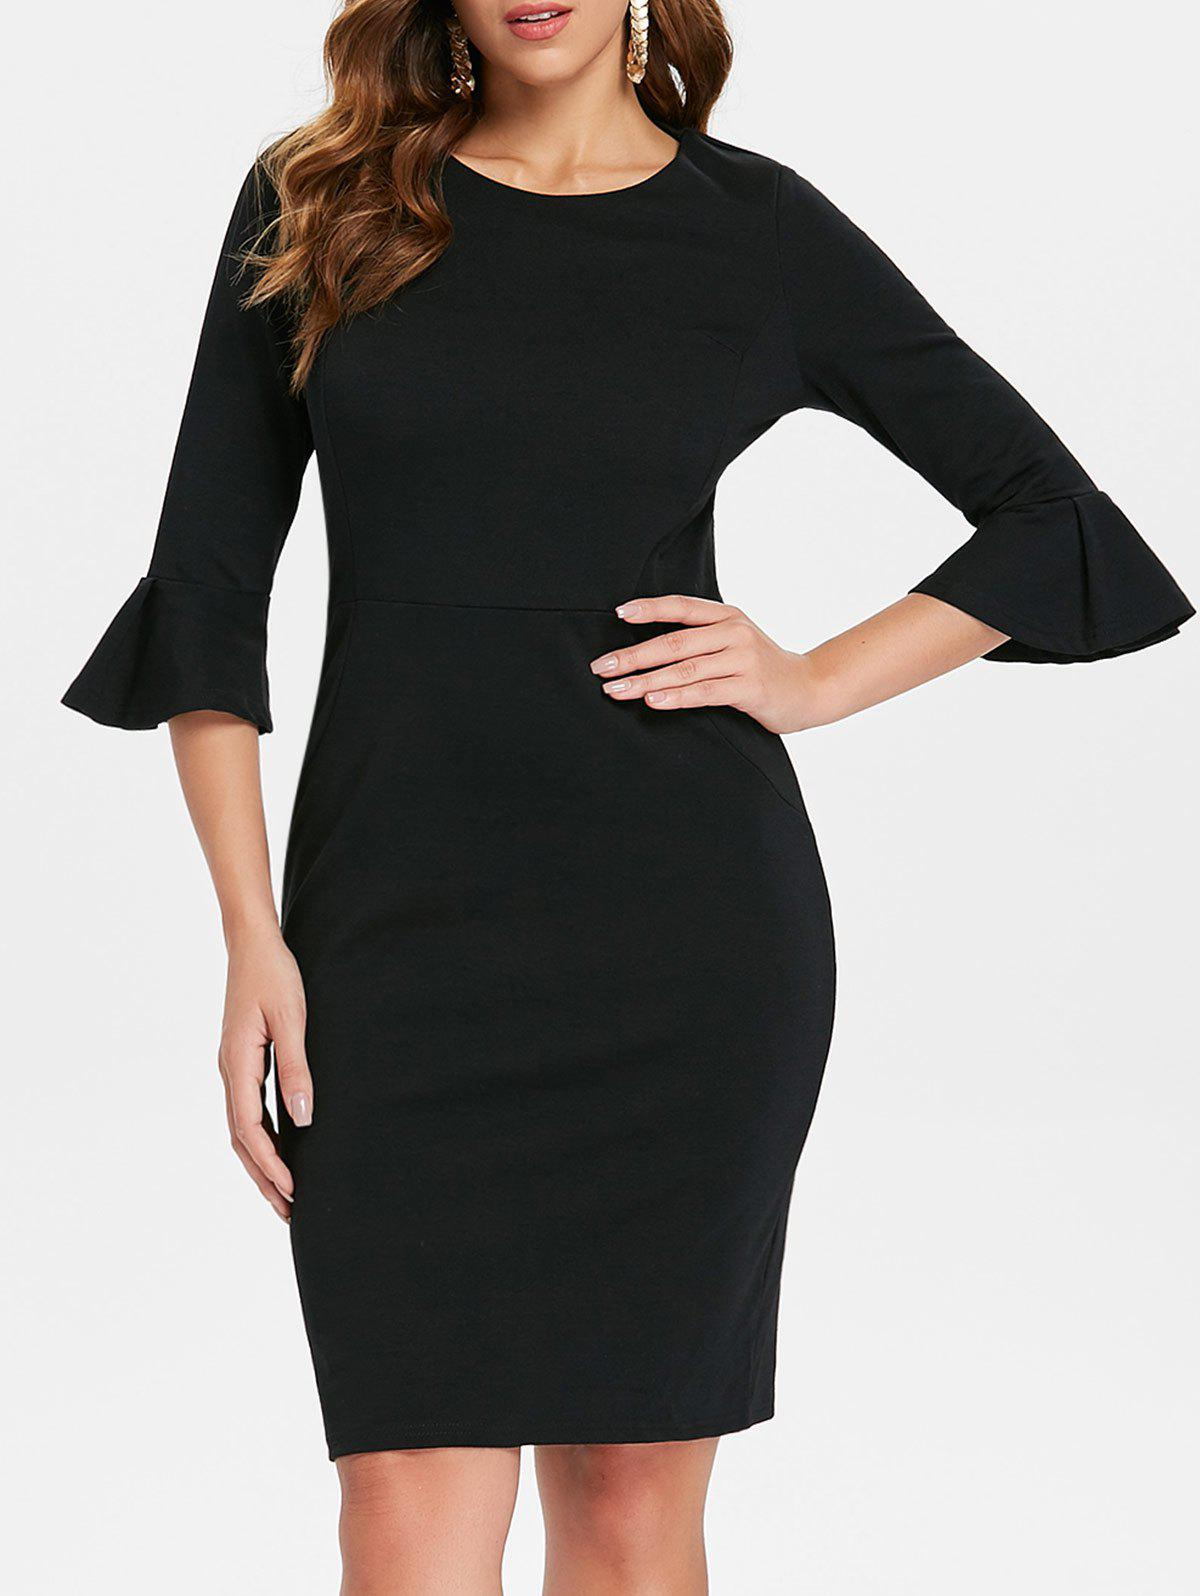 Flare Sleeve Knee Length Work Dress - BLACK L